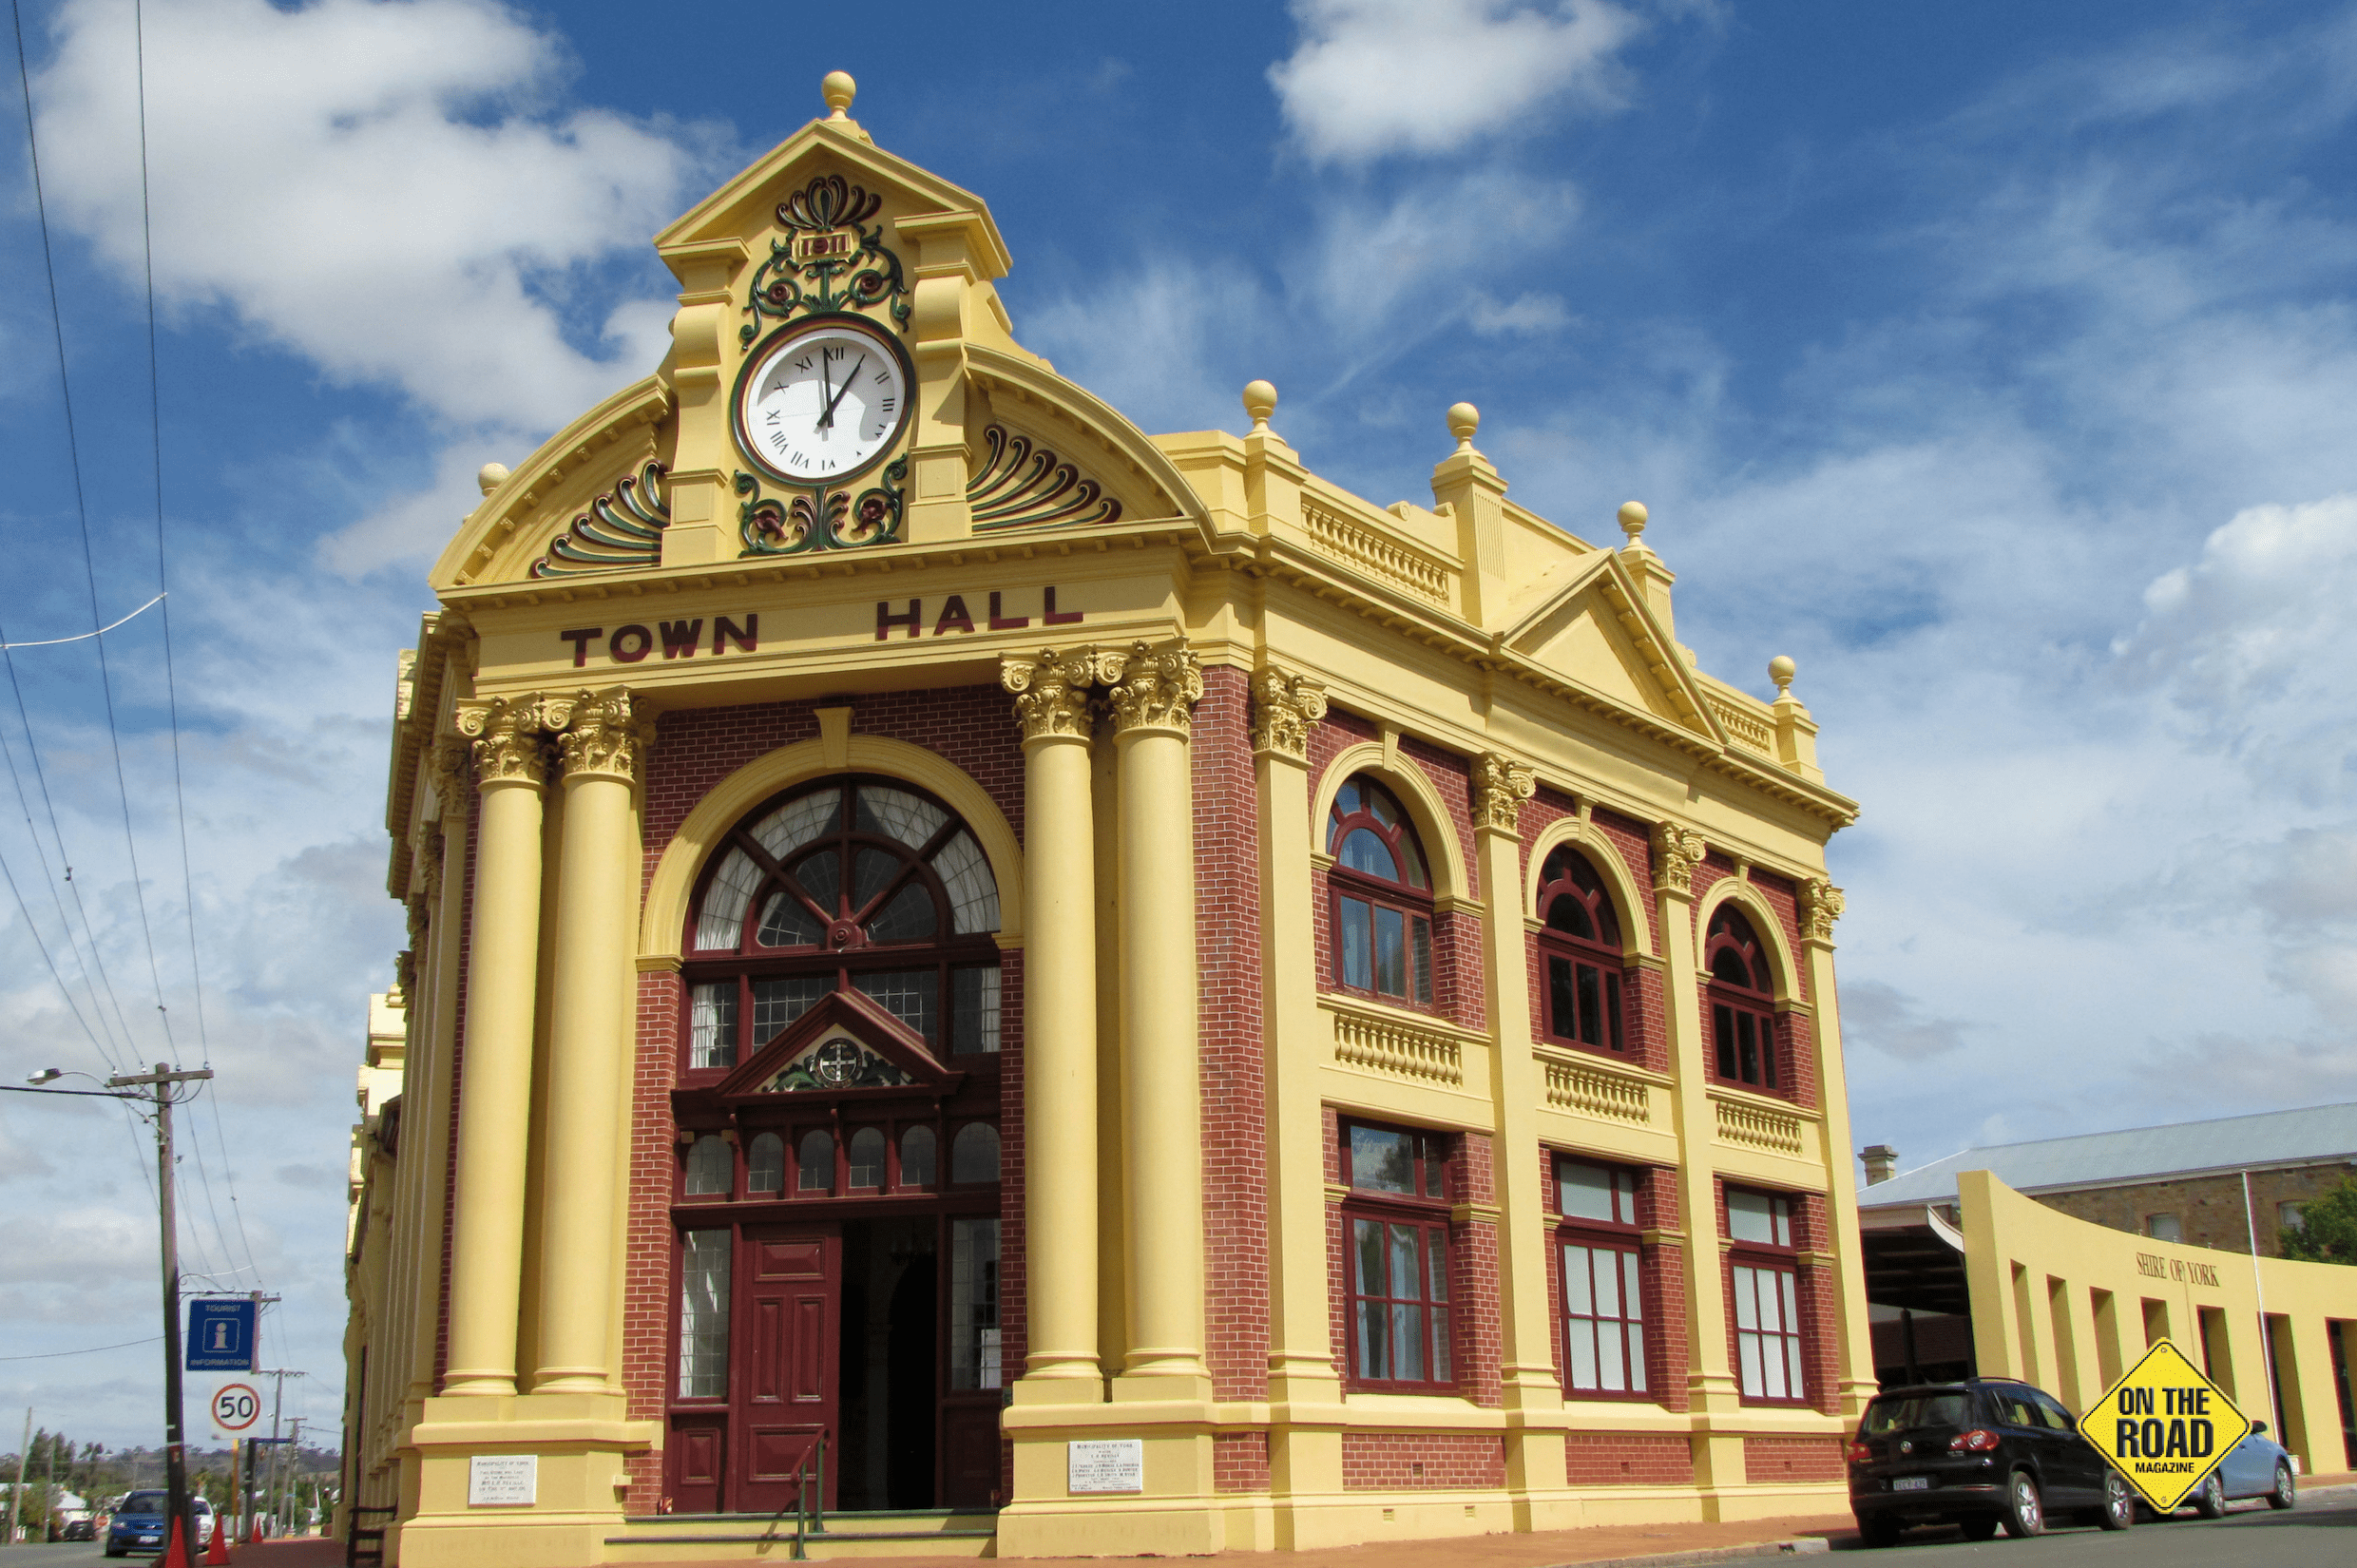 York visitor centre, about 100km east of Perth, is located in the ornate town hall dating from 1911.